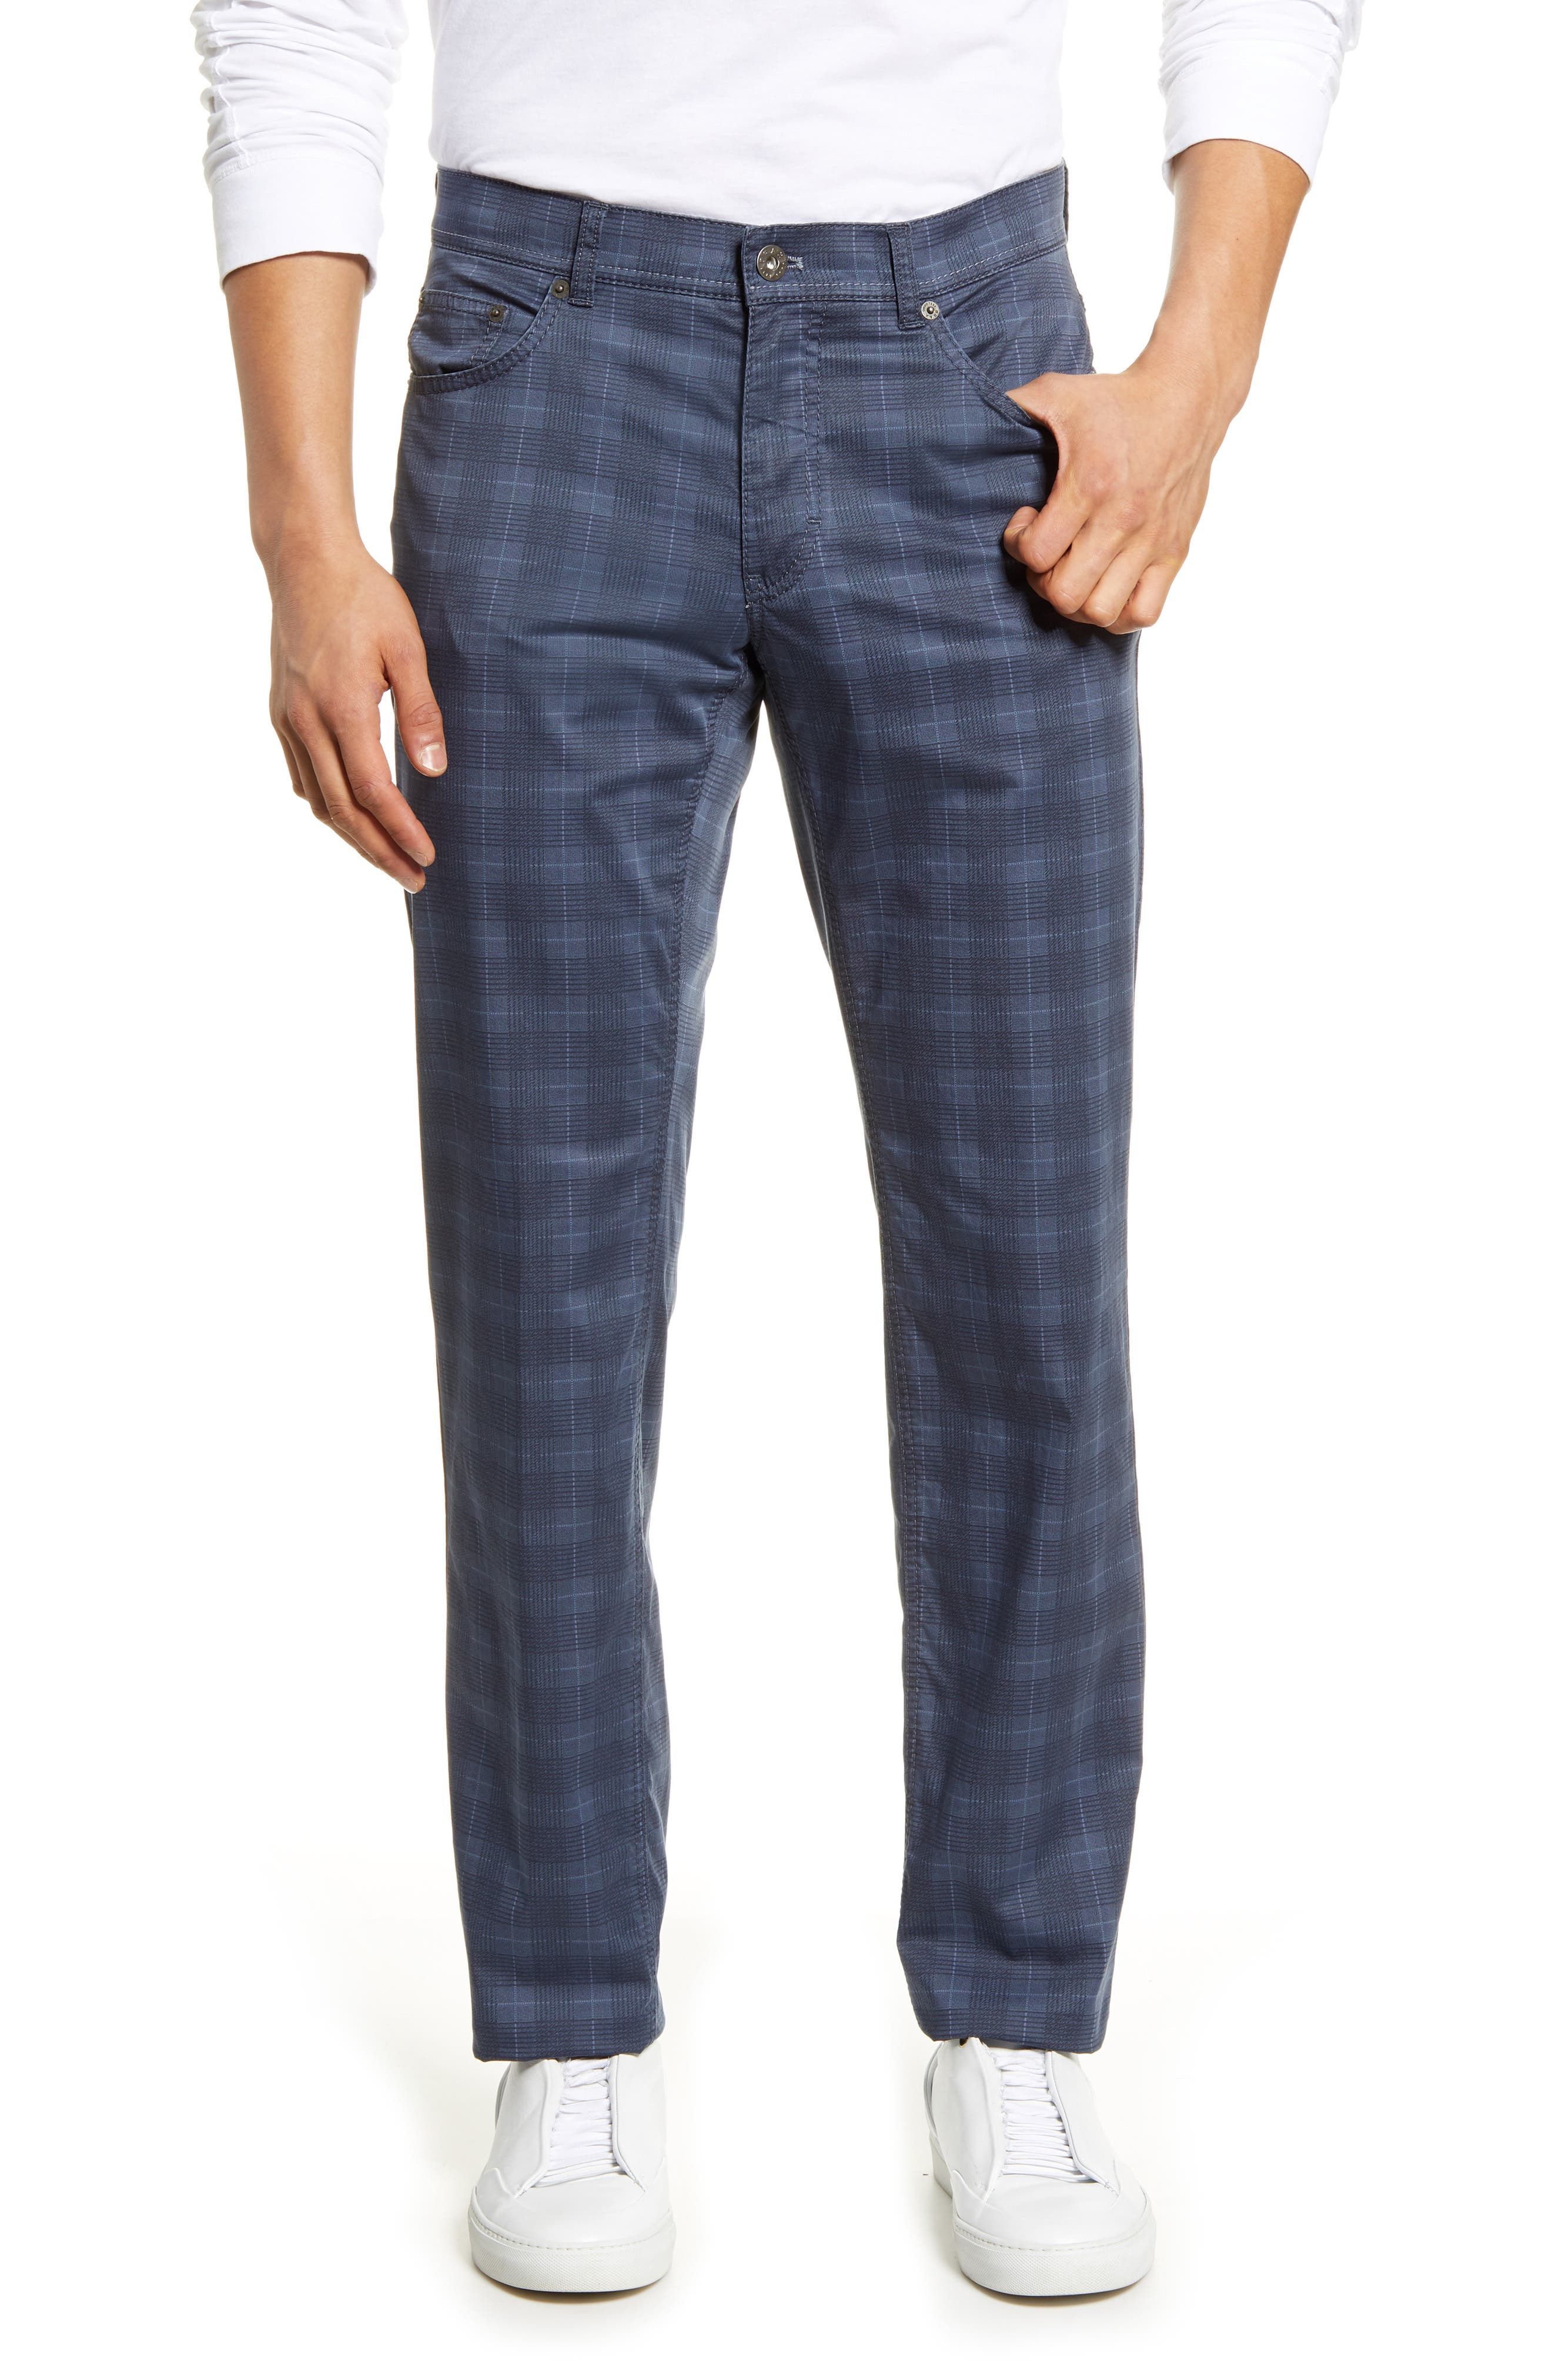 Ultra-lightweight fabric woven from stretchy cotton offers easy care and comfort to versatile plaid pants in a five-pocket cut for casual appeal. Style Name: Brax Cooper Fancy Ultralight Plaid Straight Leg Pants. Style Number: 6002784. Available in stores.